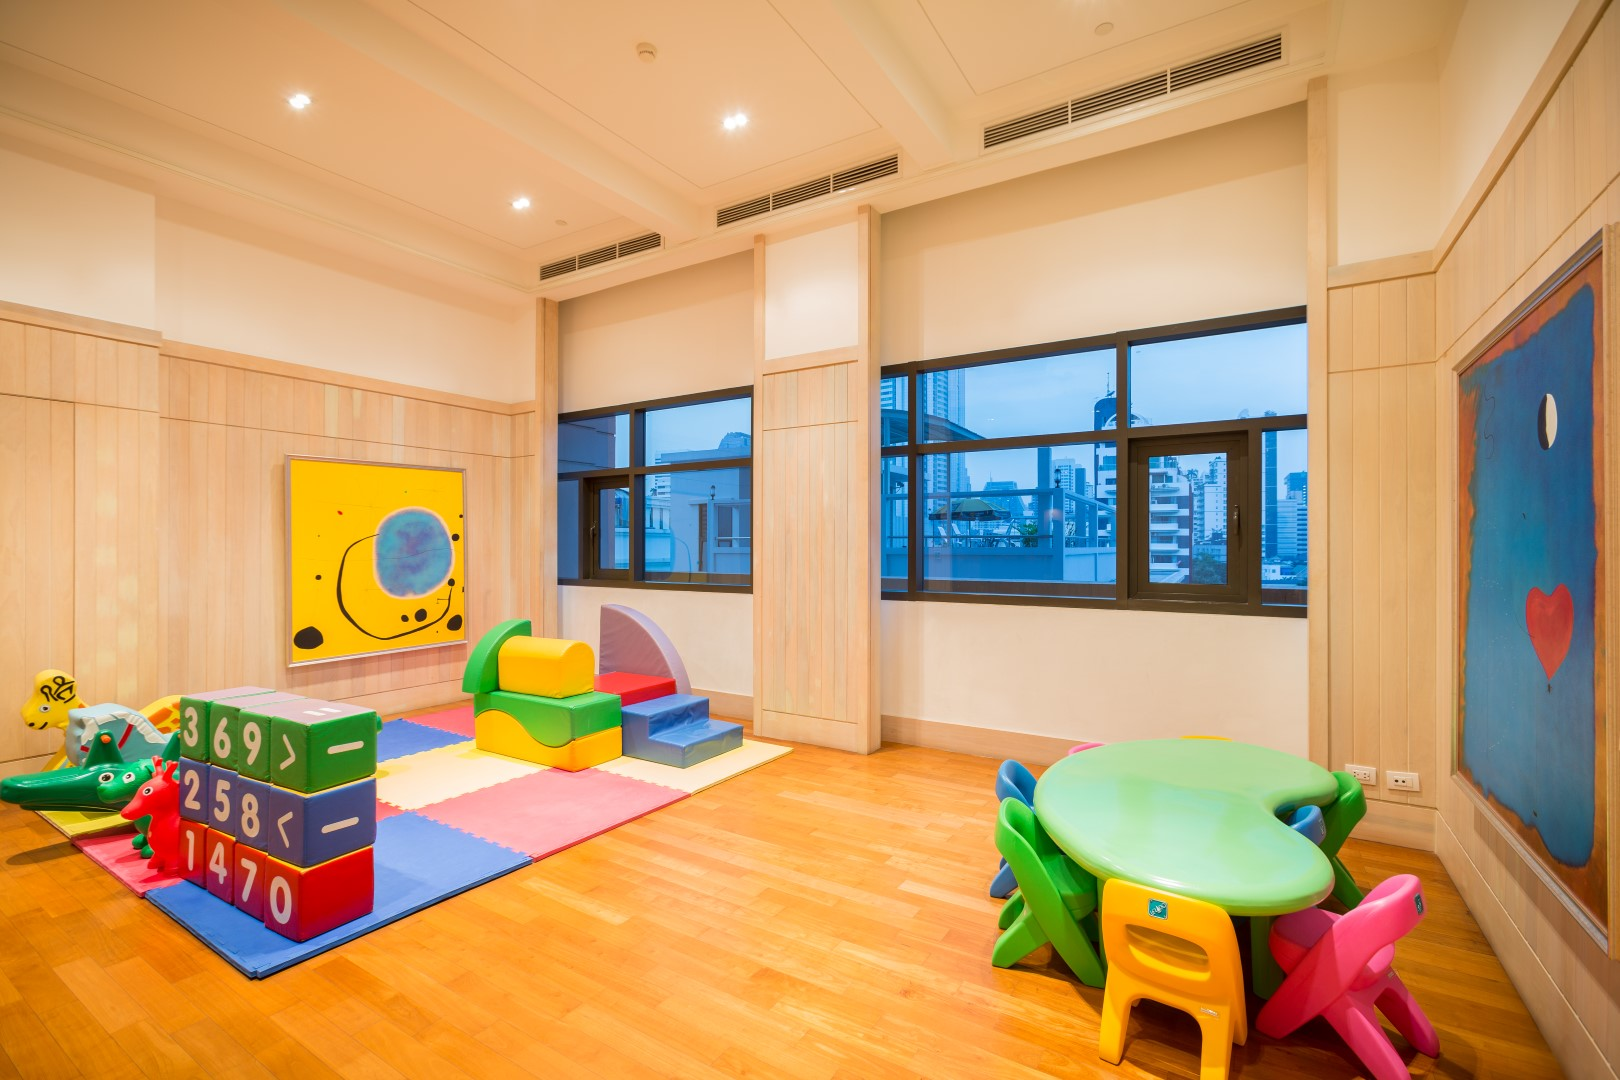 aguston facilities children playroom.jpg